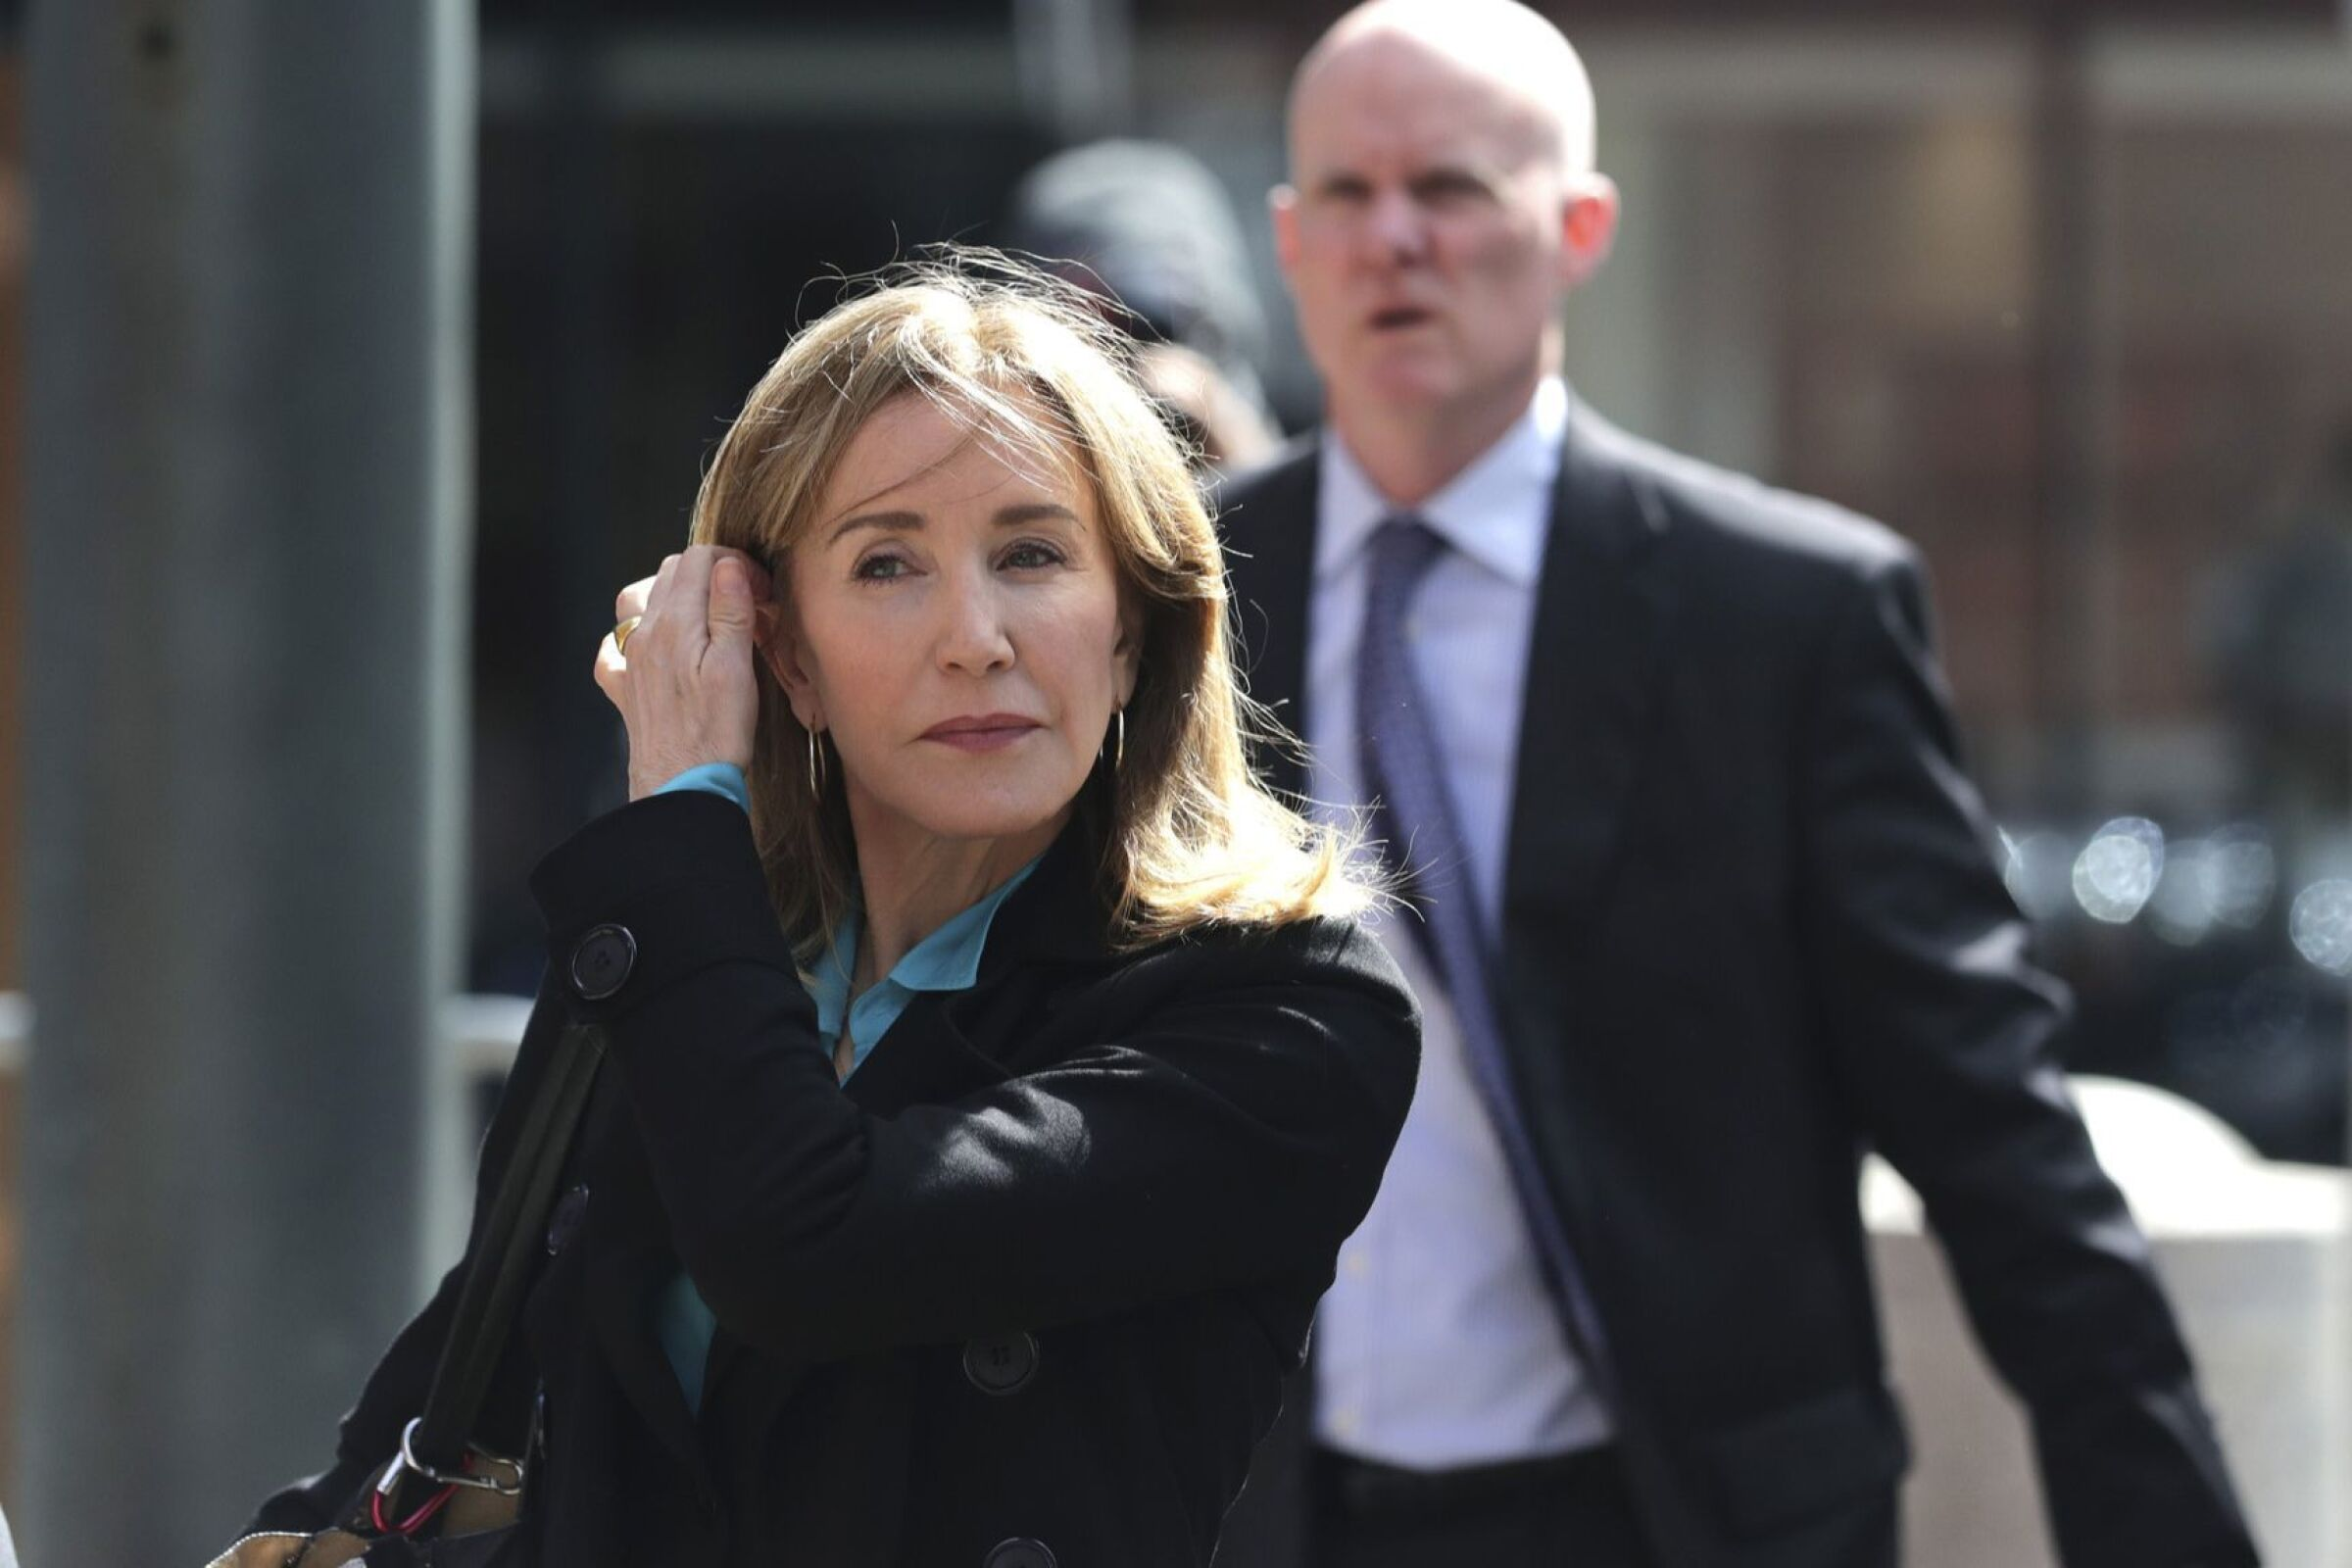 Actress Felicity Huffman arrives at federal court in Boston in April to face charges in the nationwide college admissions bribery scandal. She later pleaded guilty to a fraud conspiracy charge.